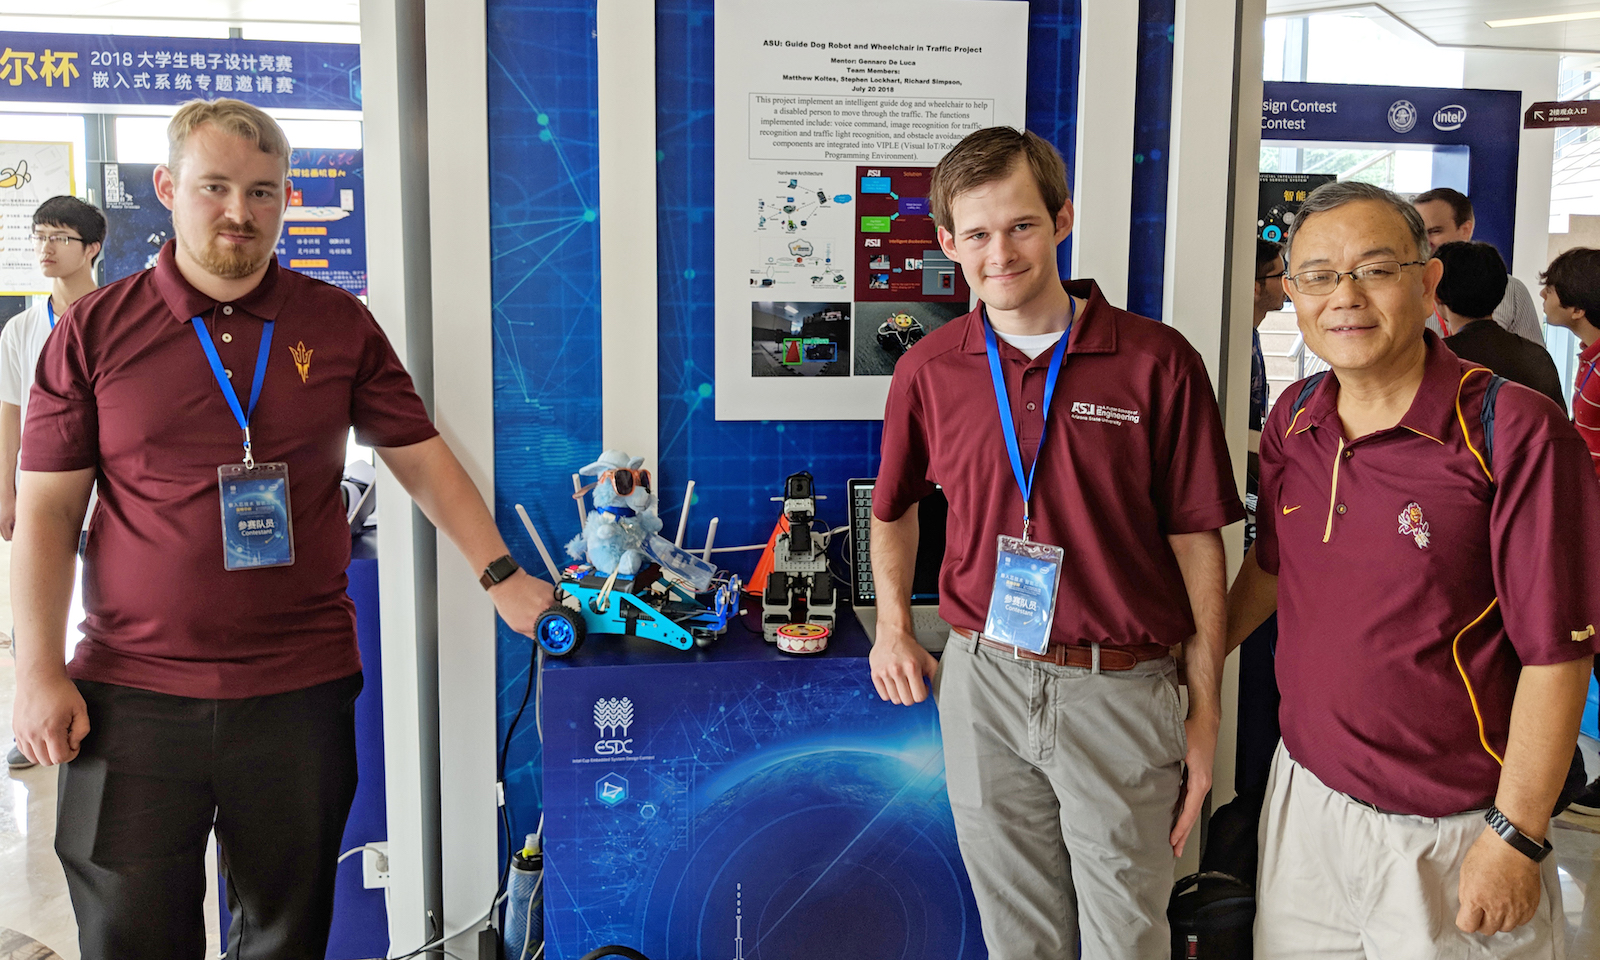 Robotic guide dog leads ASU team to 1st prize at Intel Cup